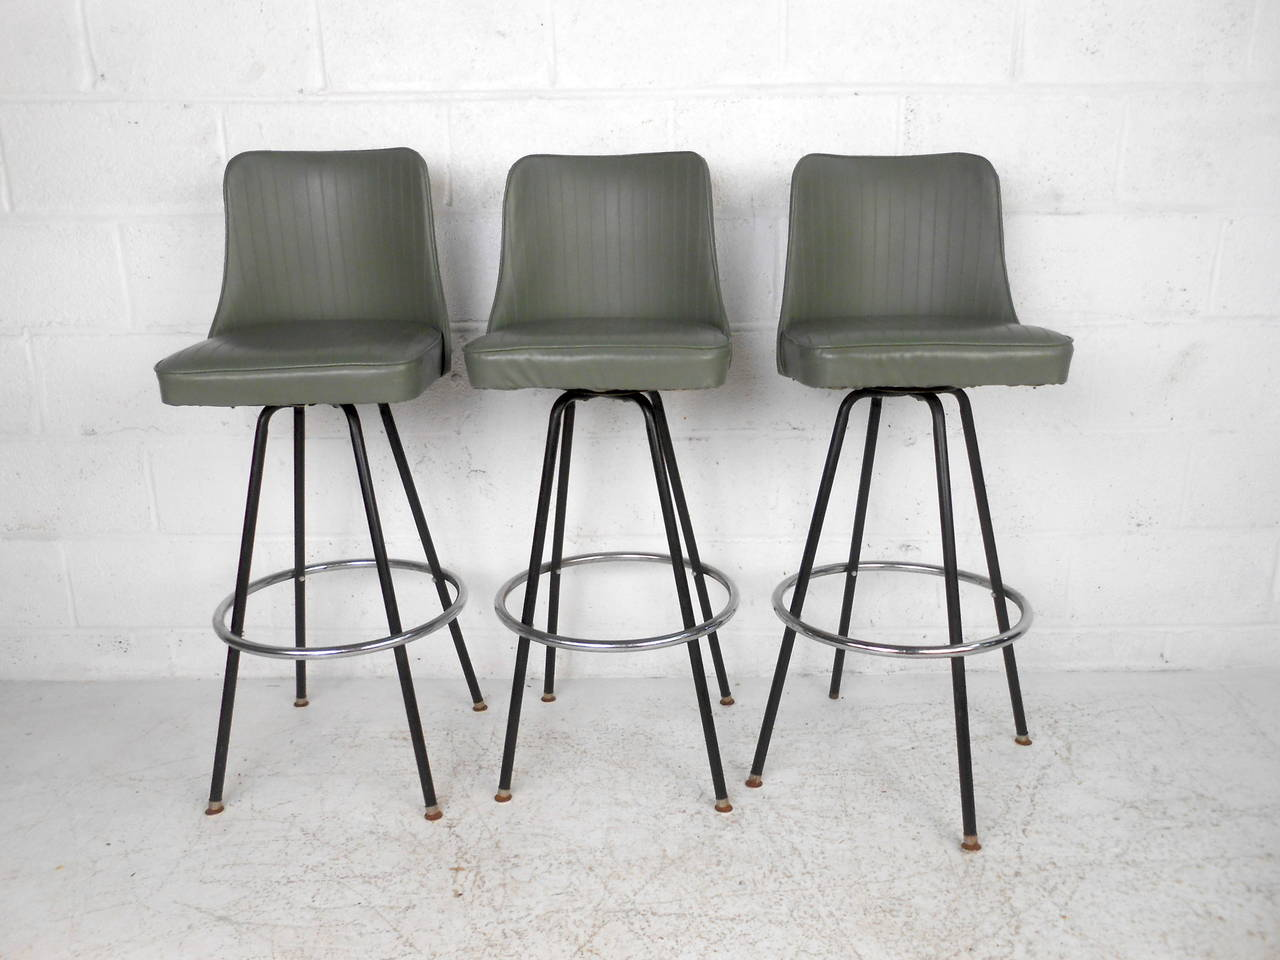 This set of three mid century bar stools by Atlas Specialty Manufacturing  feature a green vinyl